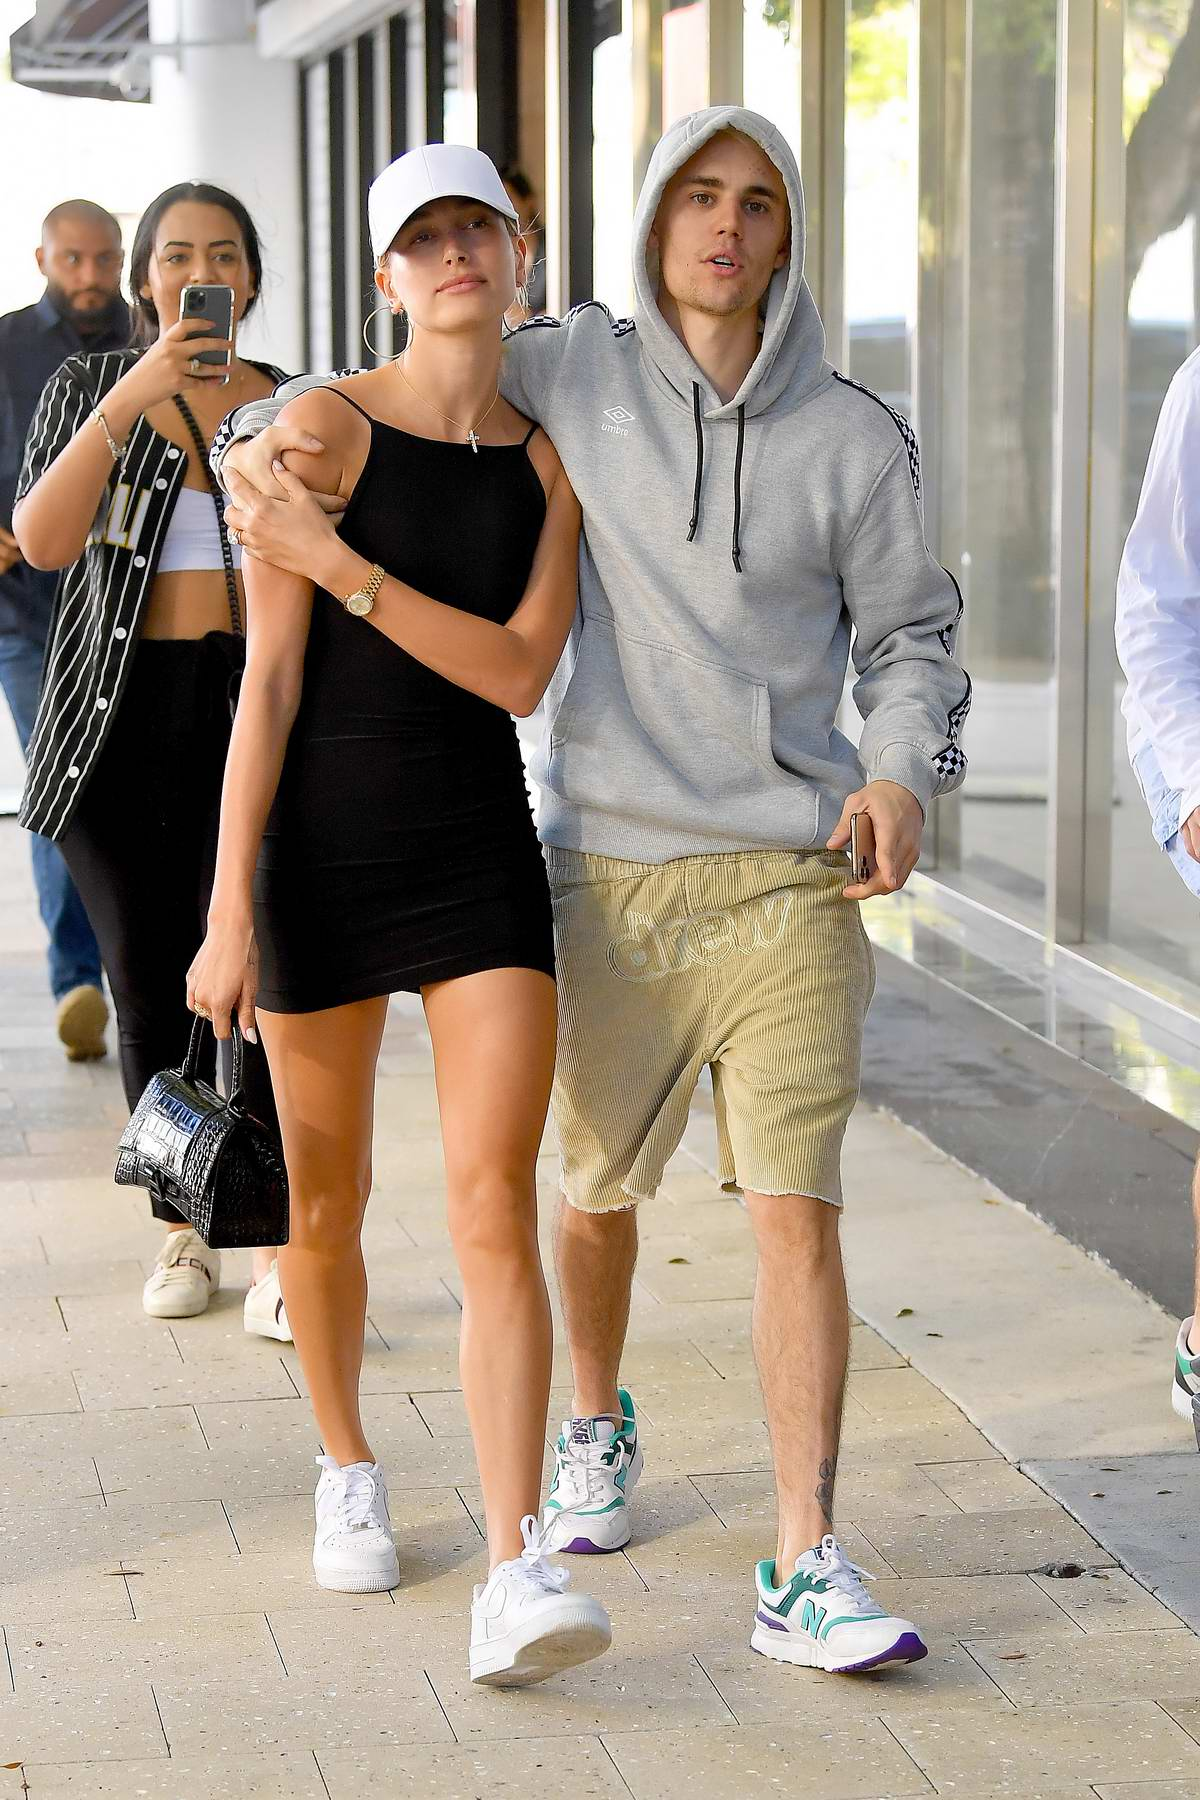 Hailey Bieber looks great in a black mini dress as she steps out for lunch with Justin Bieber in Key Biscayne, Miami, Florida